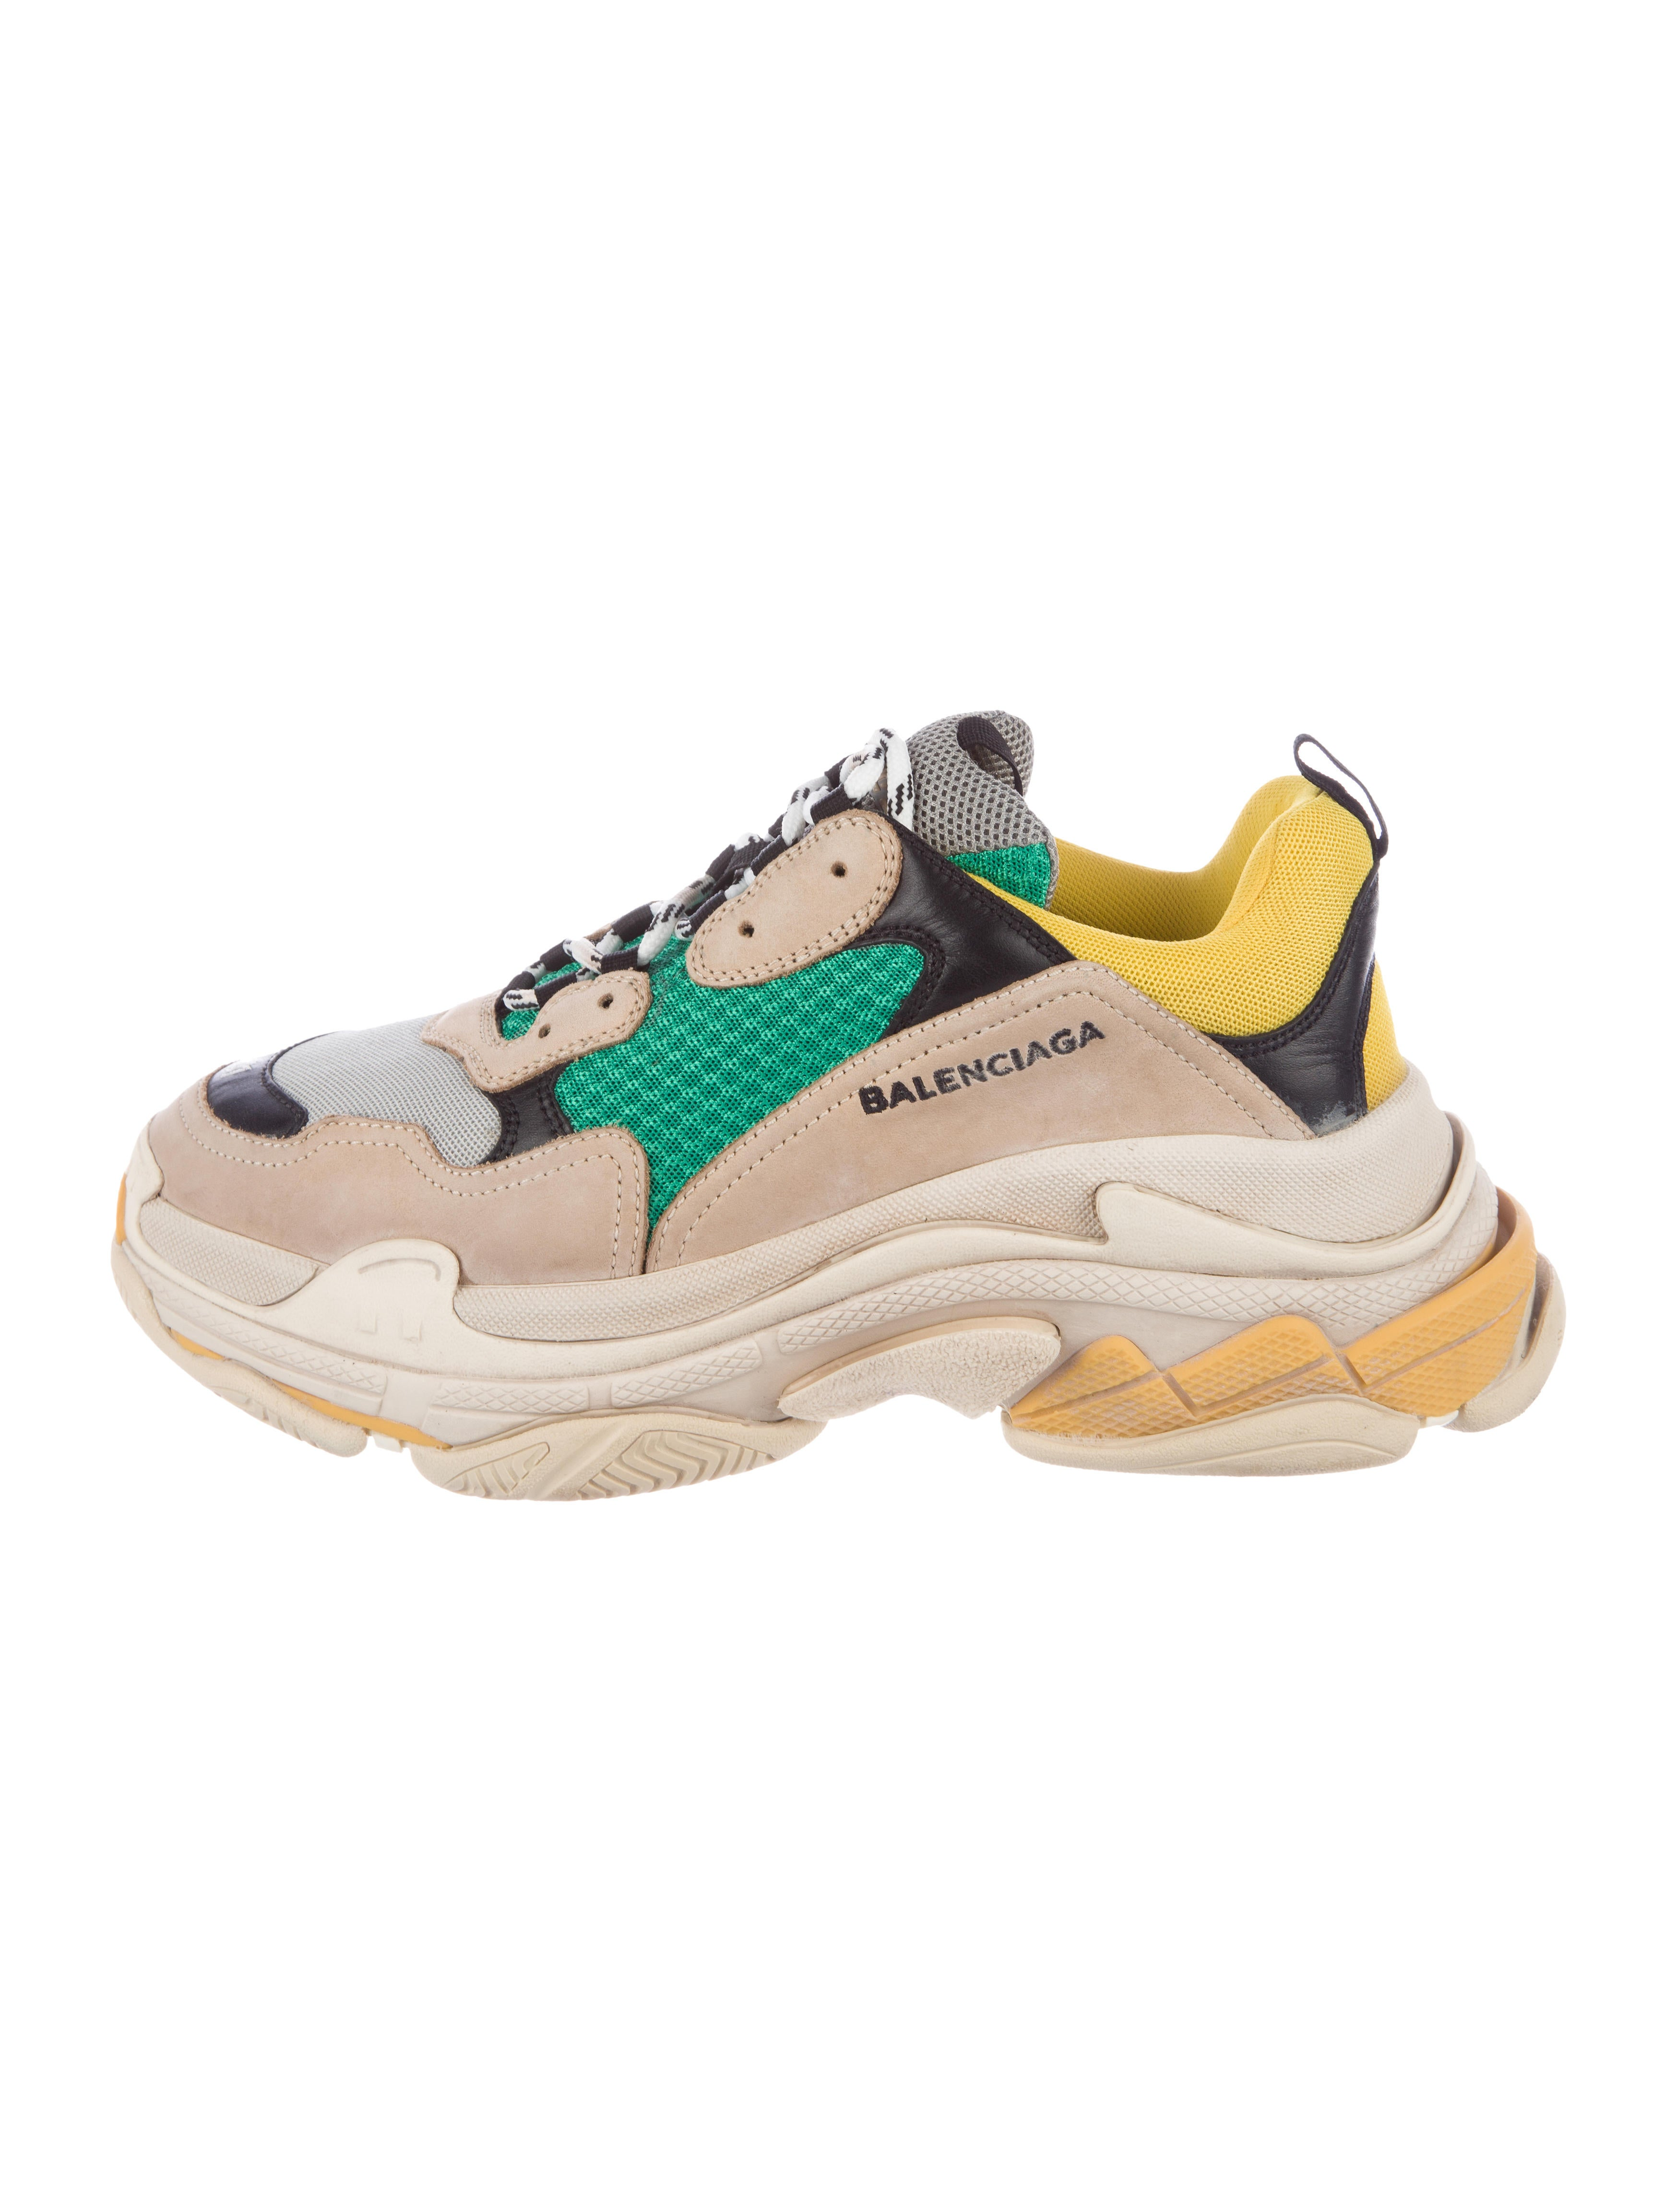 BALENCIAGA Triple S Sneakers in White, Blue and Pink